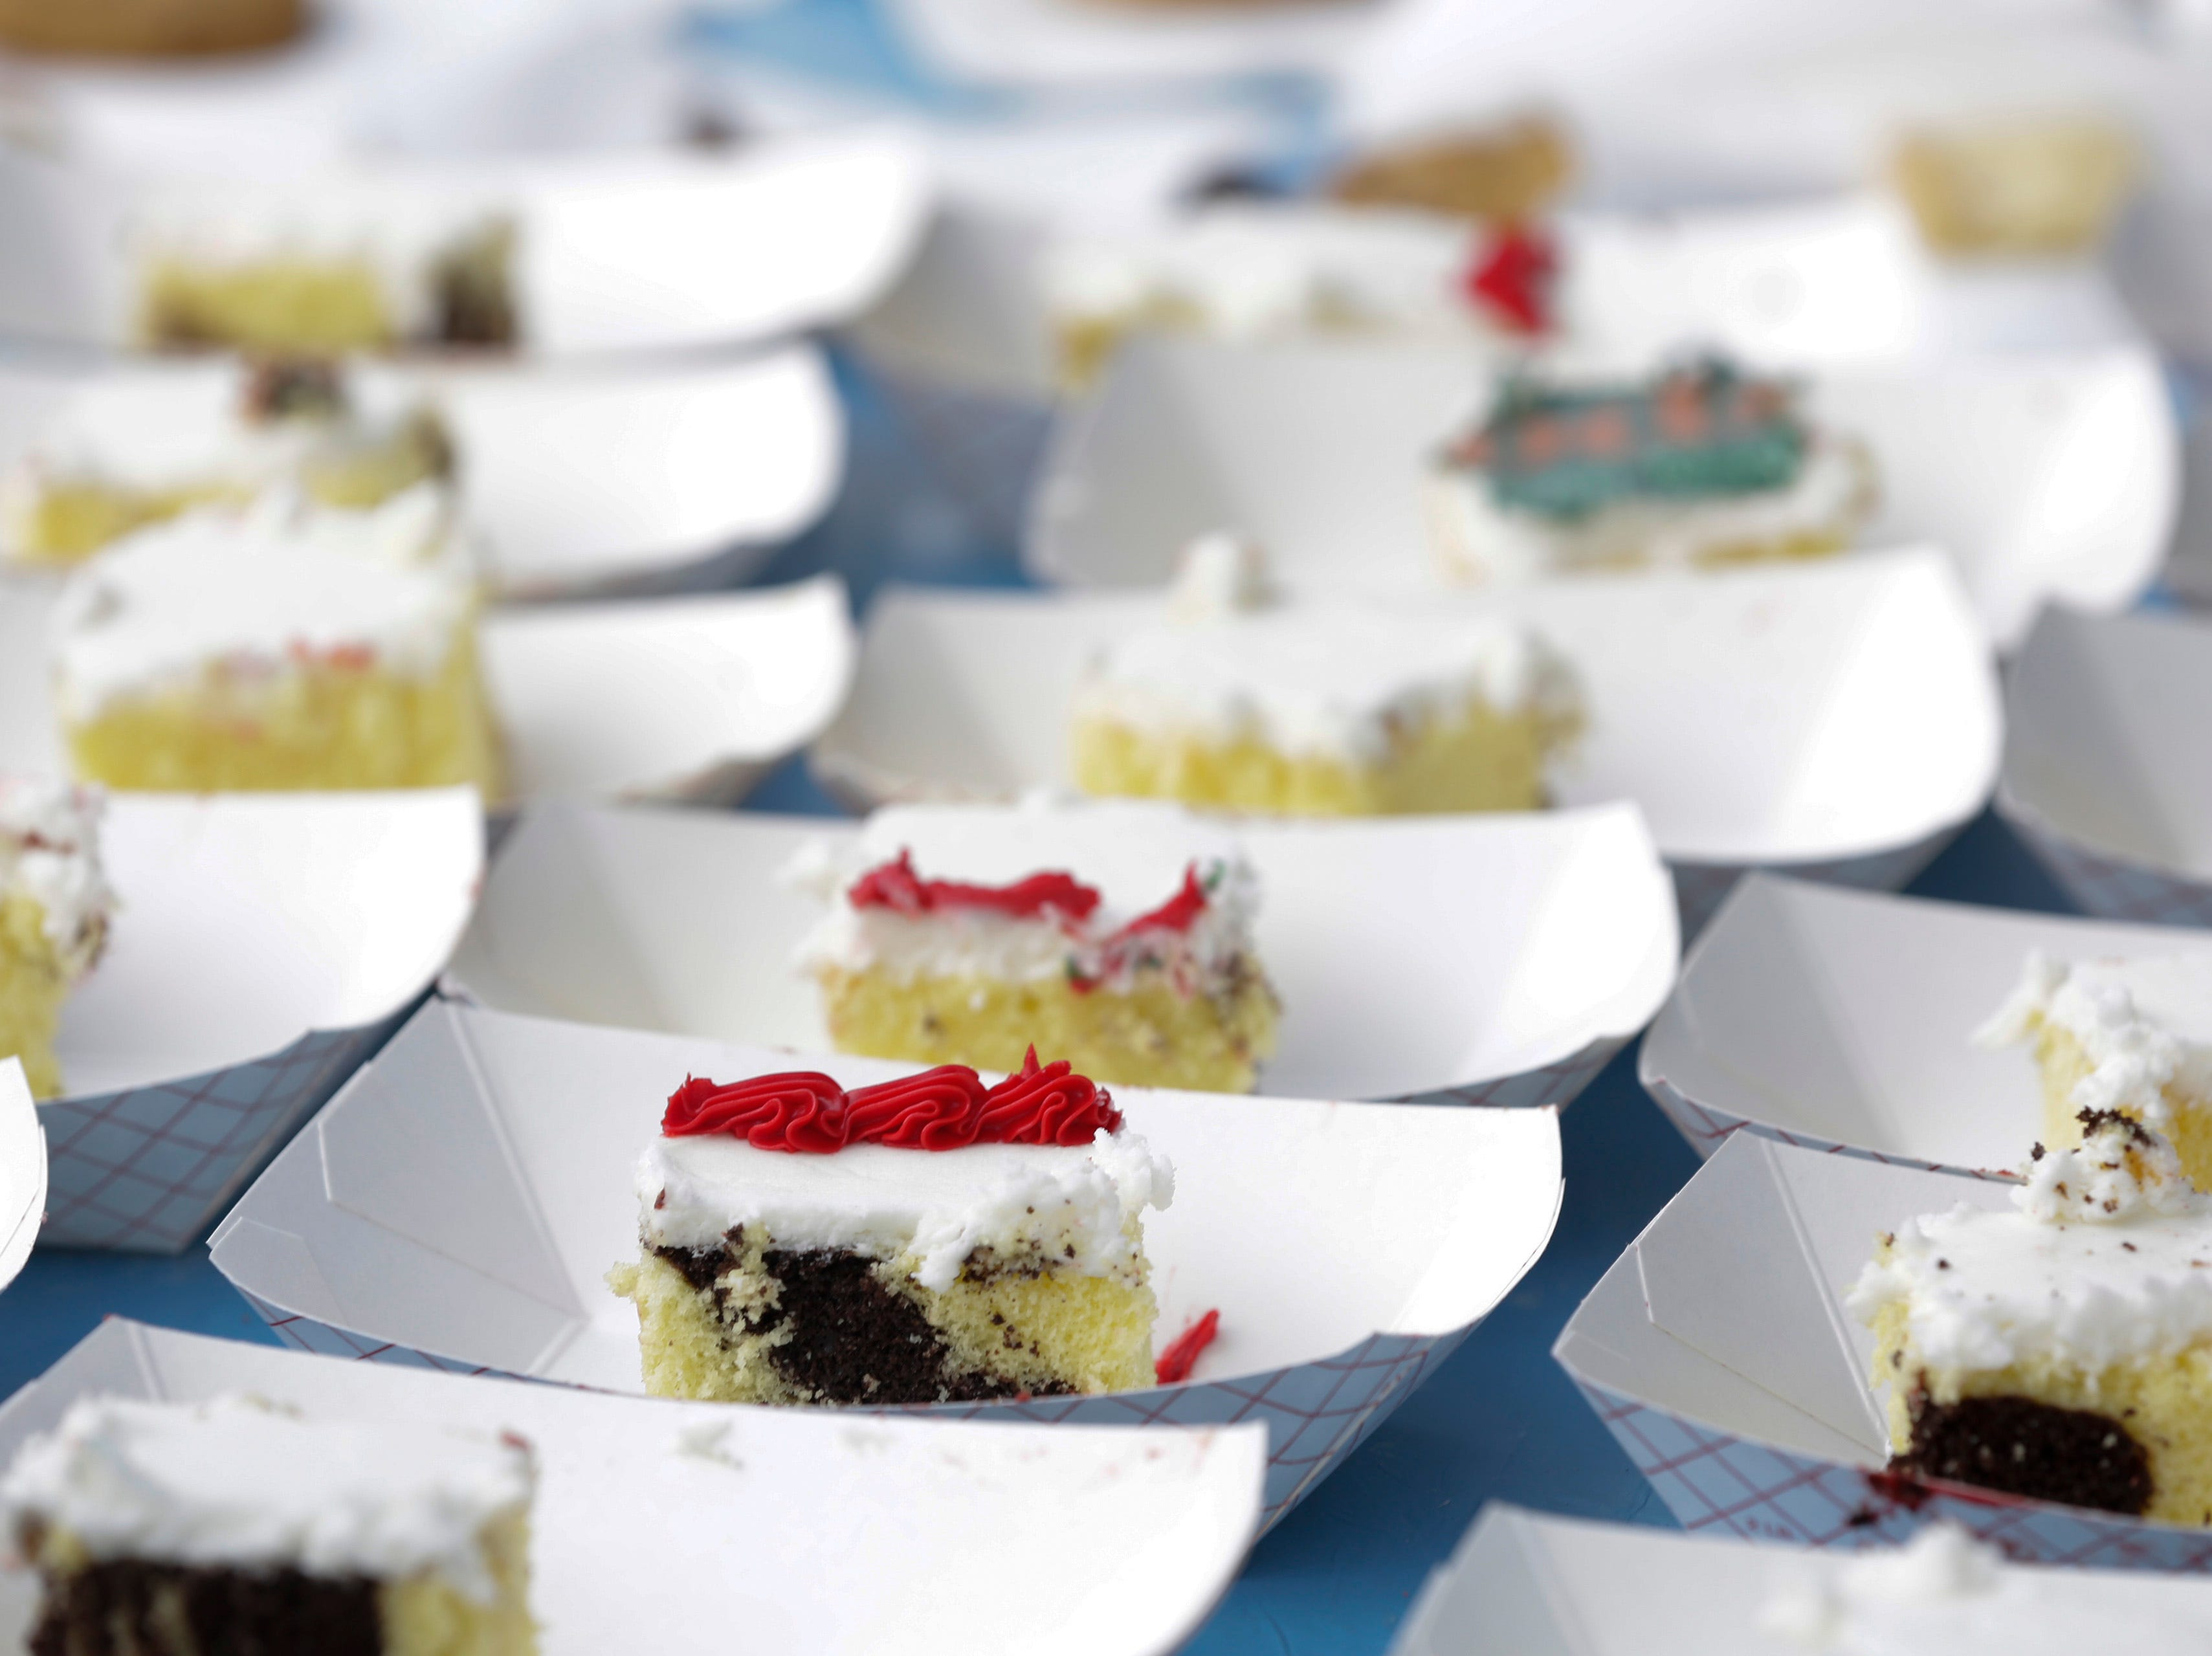 Dessert is served at the Wisconsin Rapids community picnic on First Avenue South and Johnson Street Wednesday, August 1, 2018.